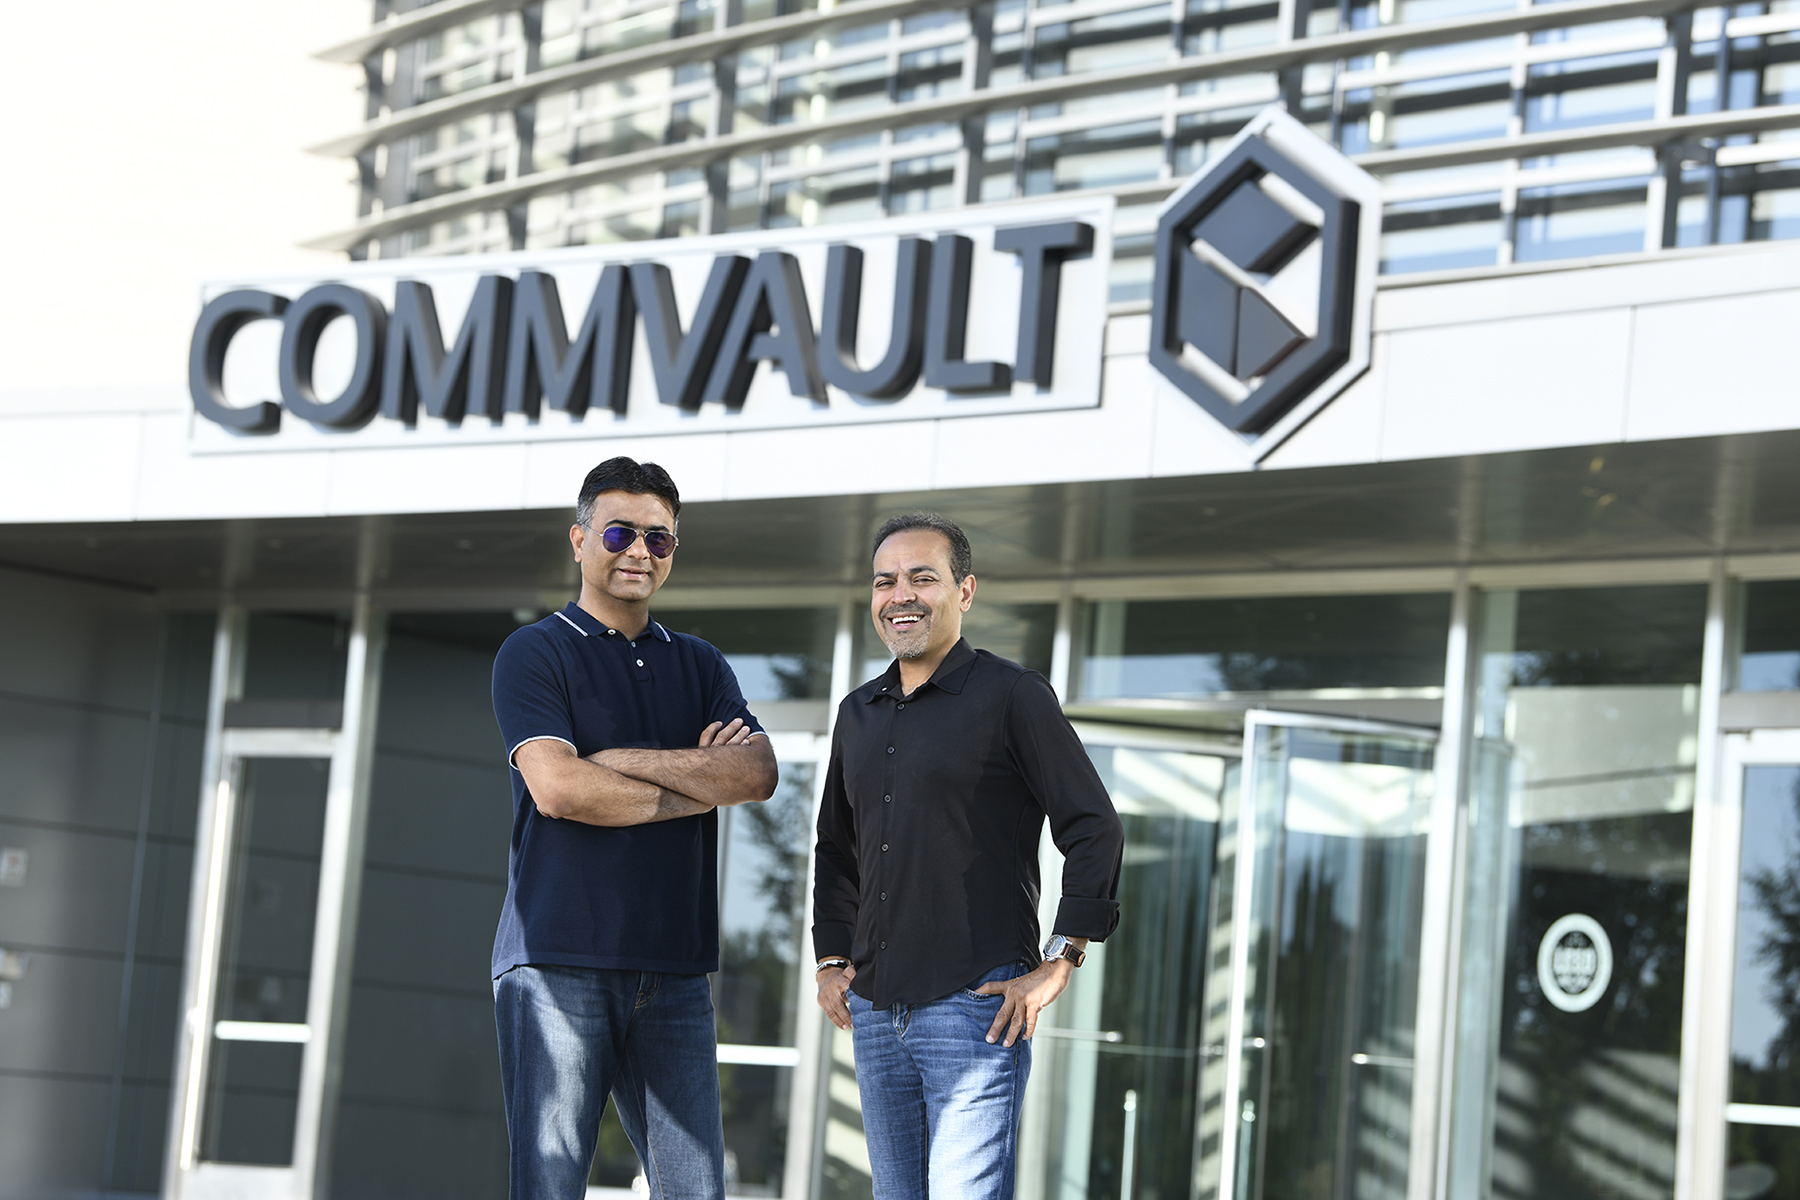 Avinash Lakshman, CEO of Hedvig (left), and Sanjay Mirchandani, CEO of Commvault (right)